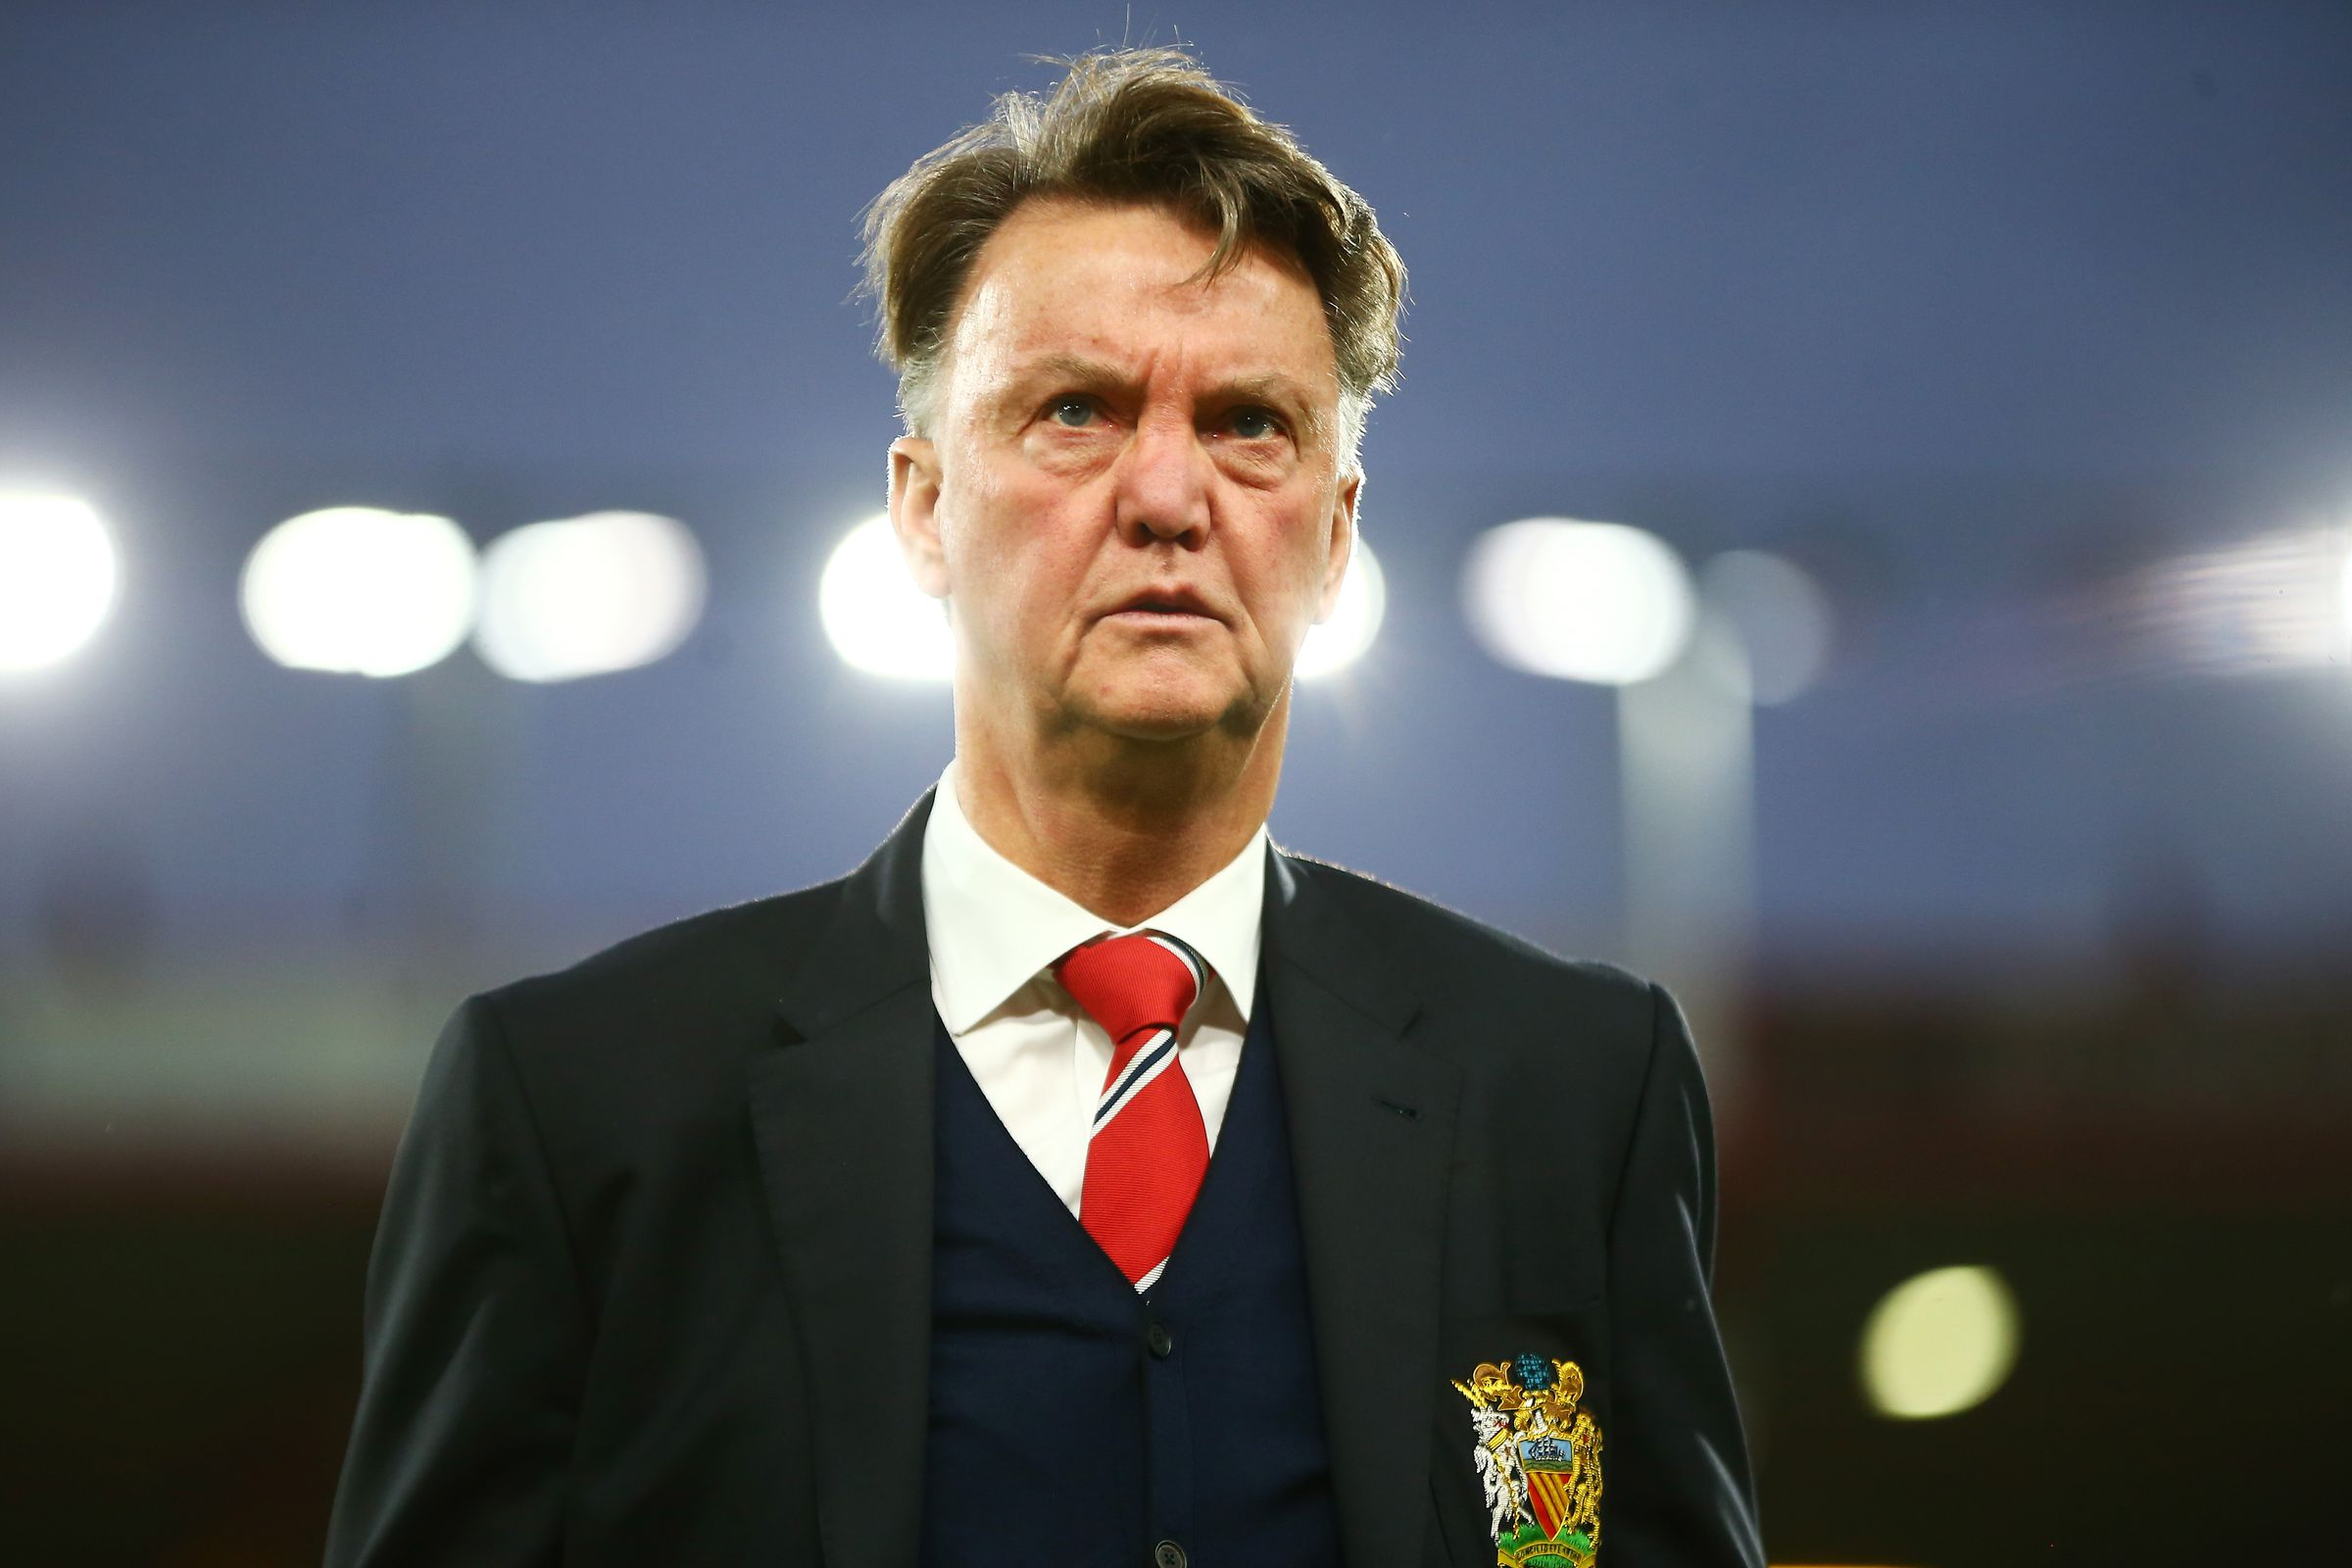 Jose Mourinho tells Louis van Gaal: 'I want the Man United job'